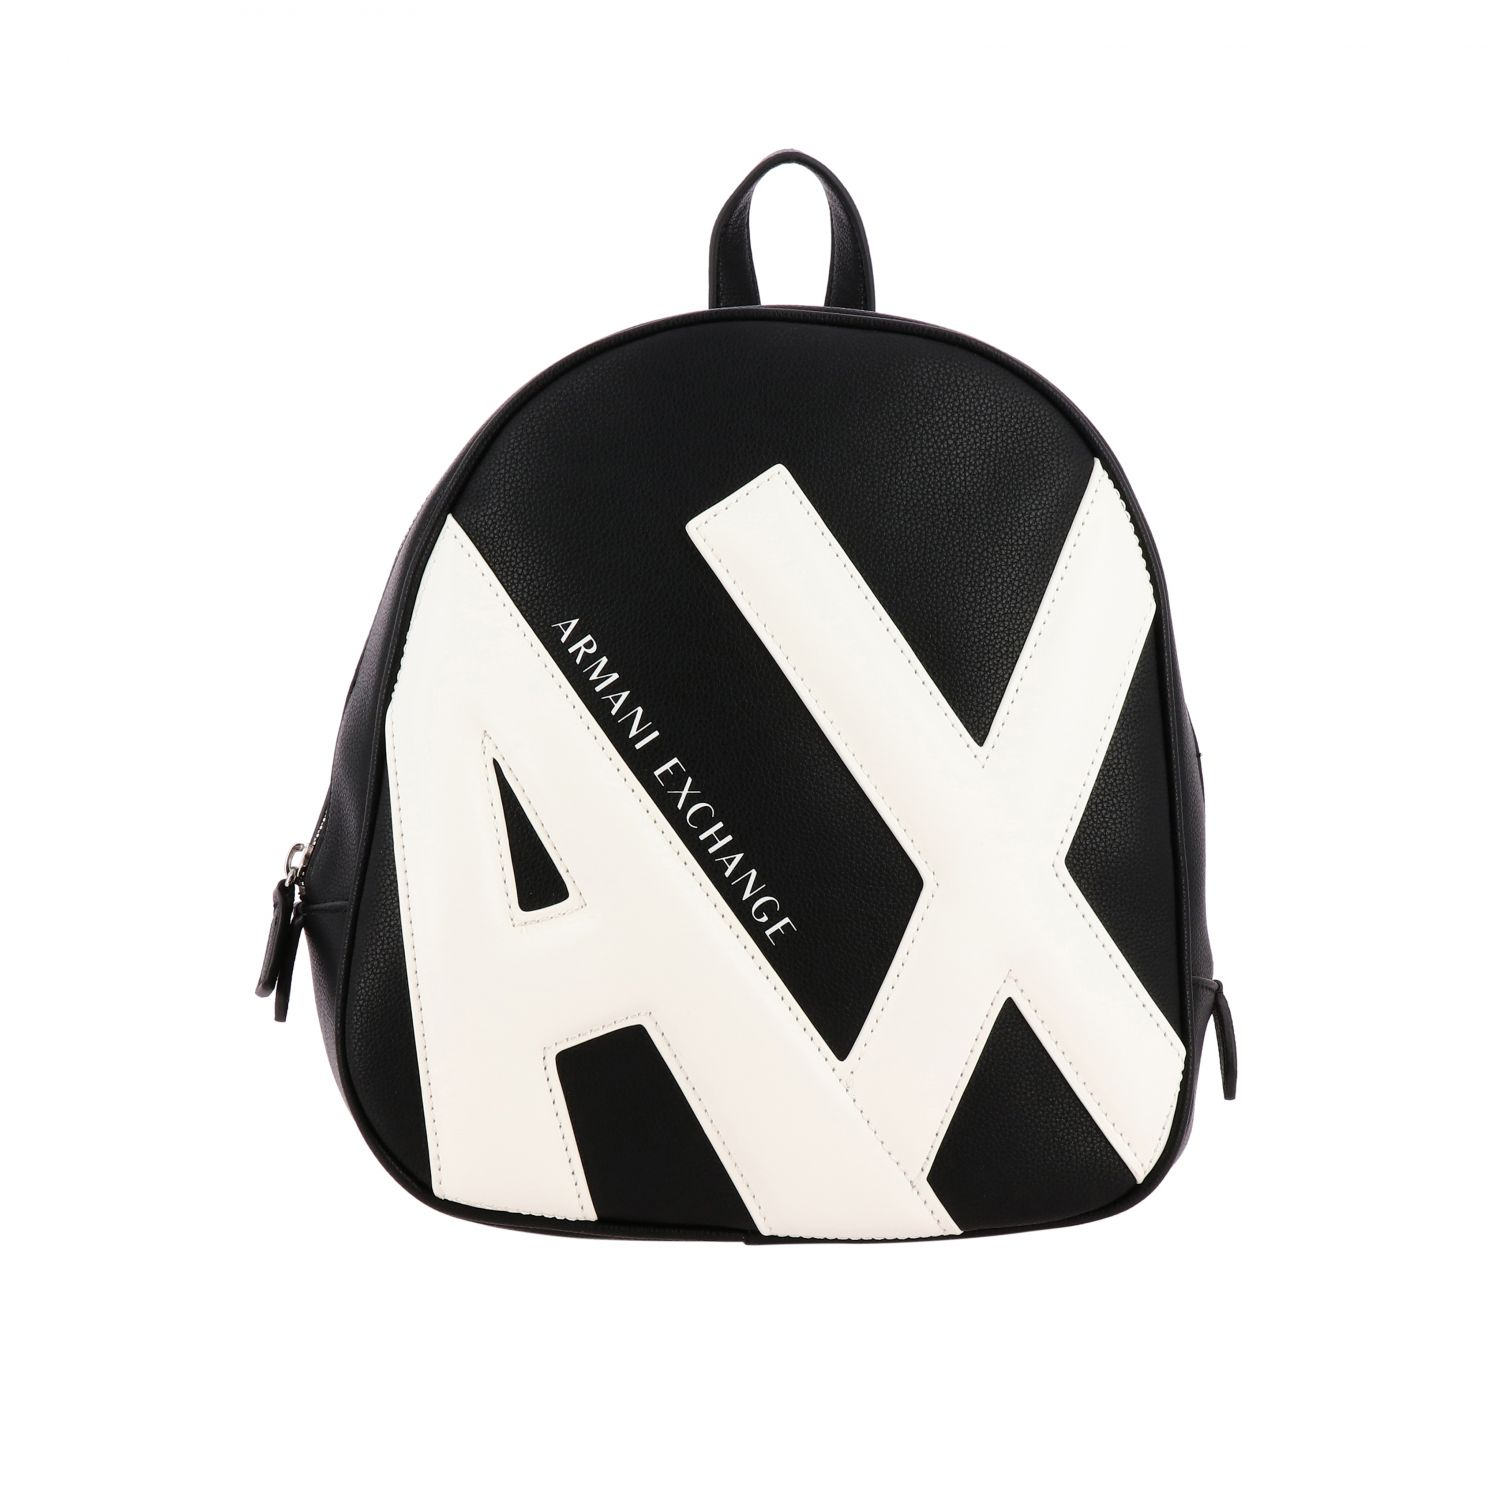 Sac à dos Armani Exchange: Sac porté main femme Armani Exchange noir 1